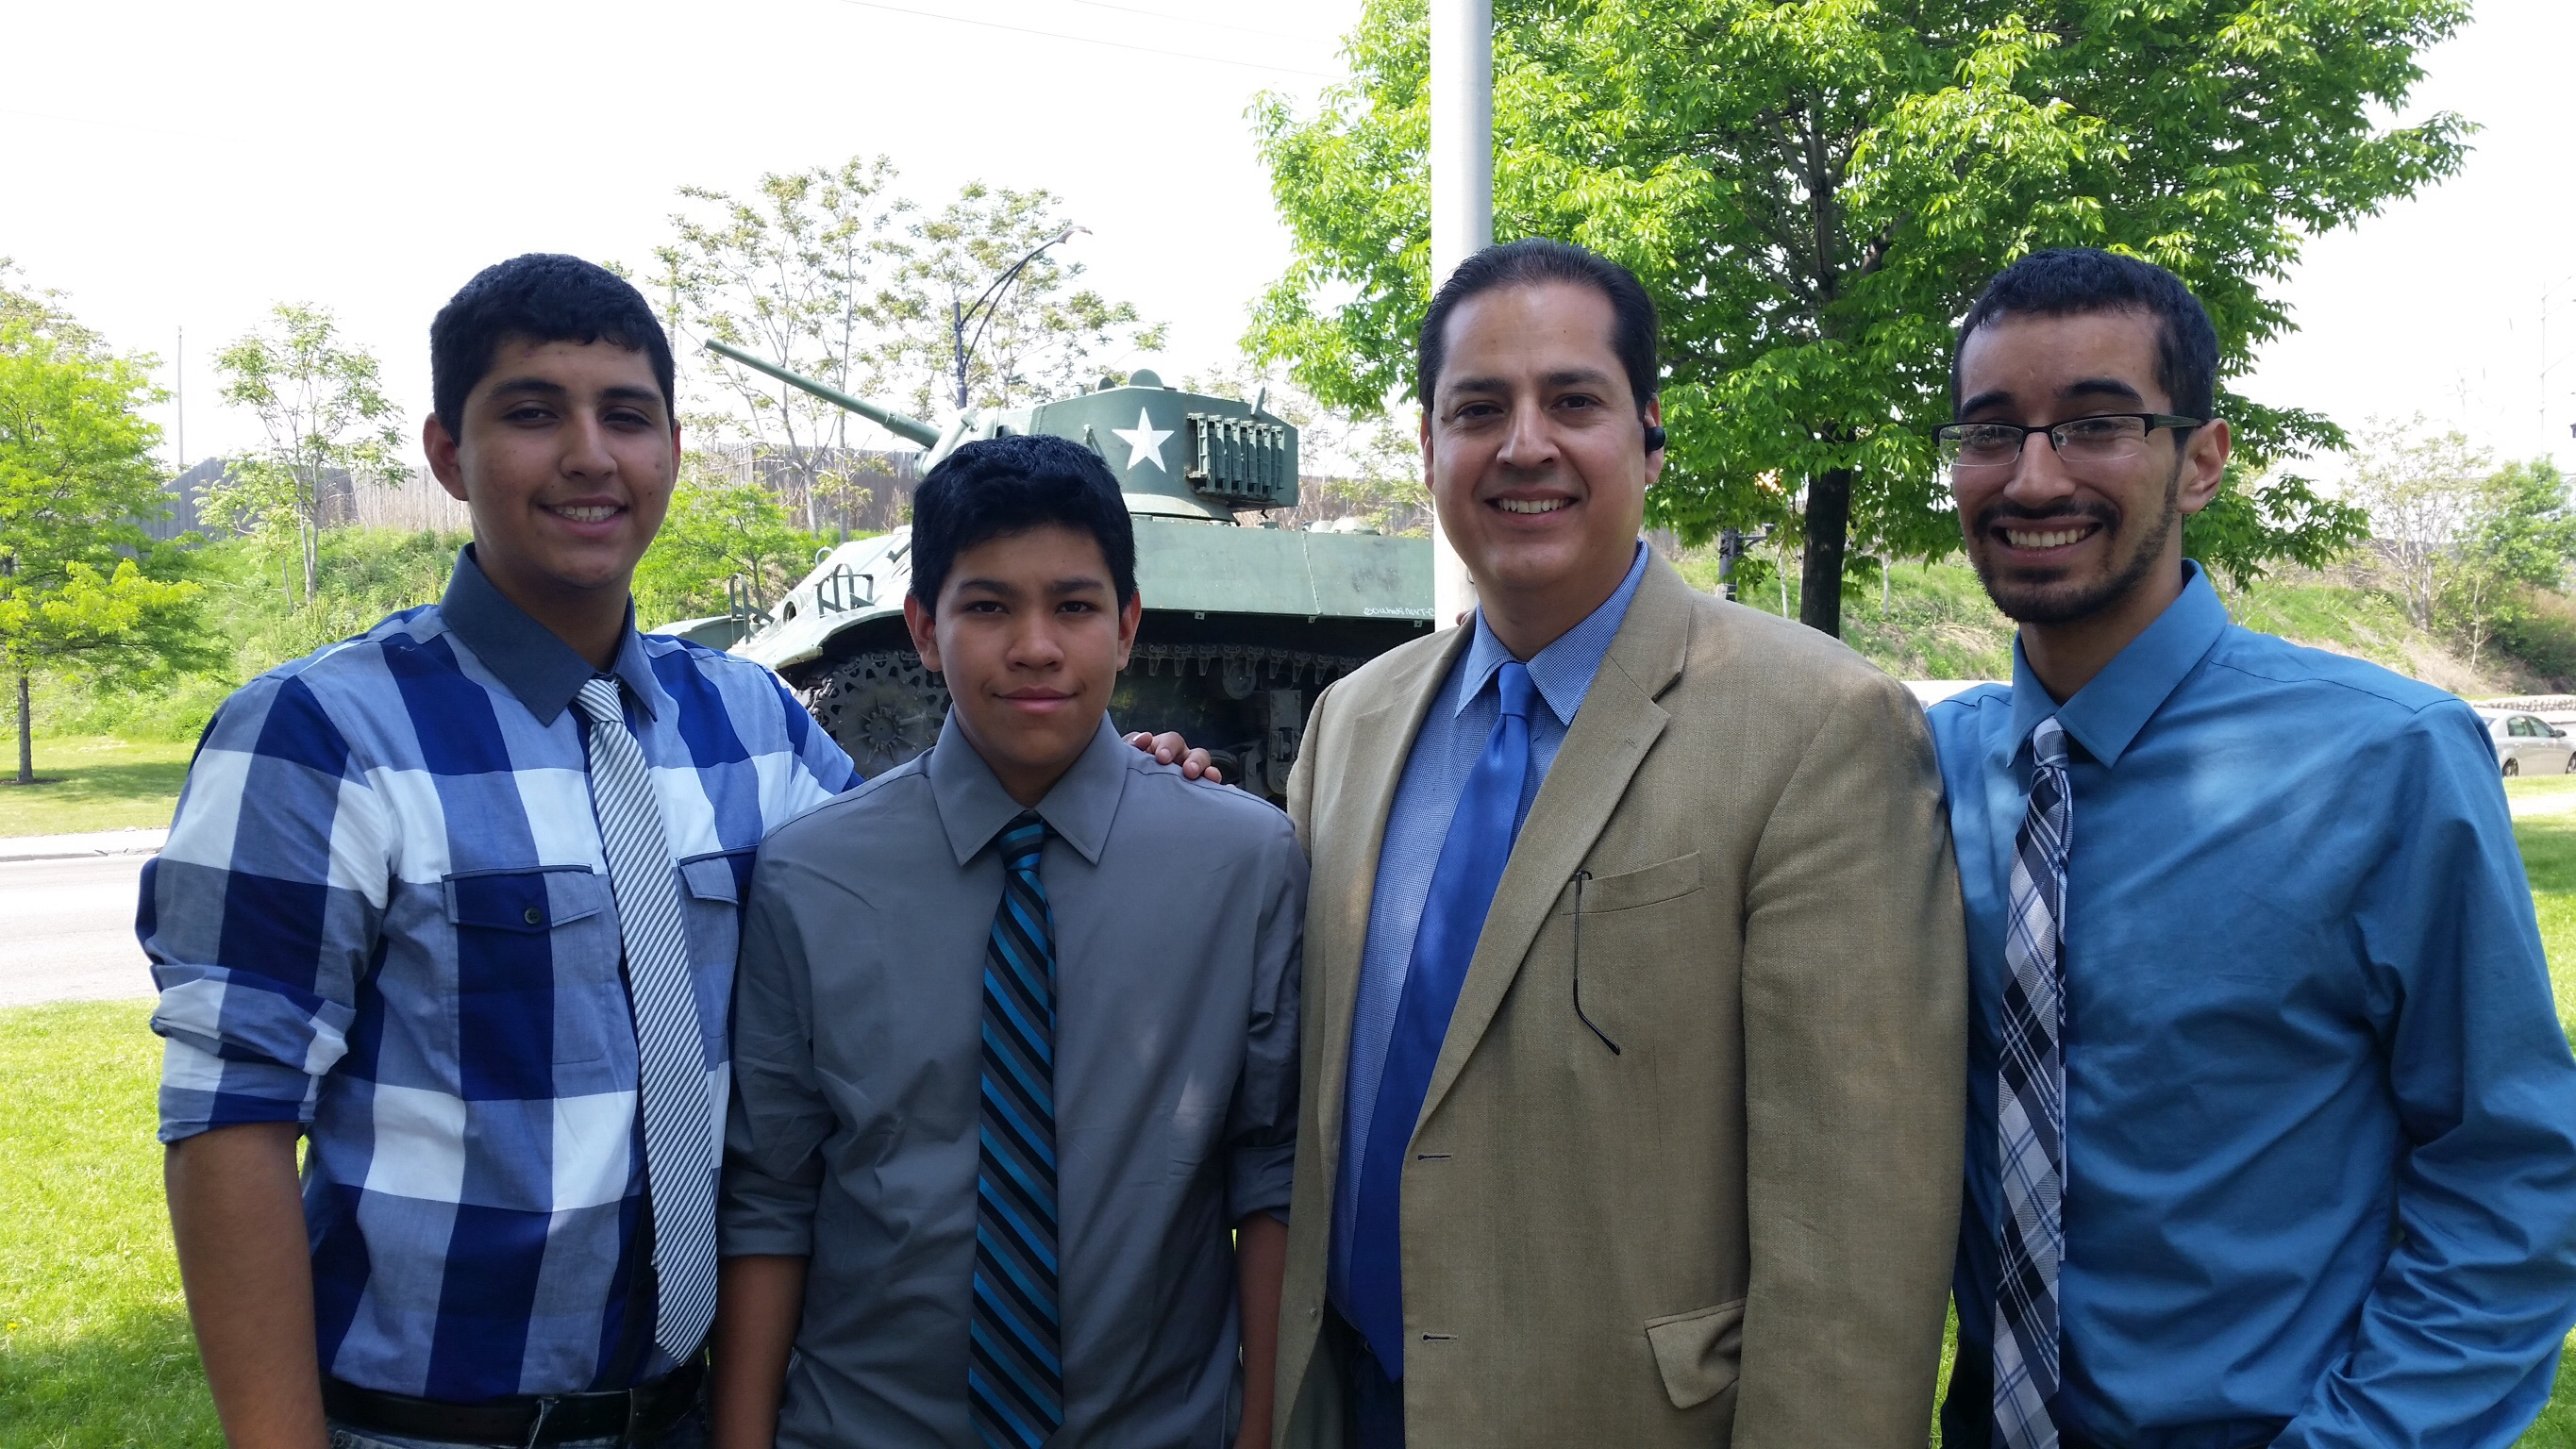 Smith Park Advisory Council President David R. Ramos with his three sons at the 2014 Memorial Day celebrations at Smith Park